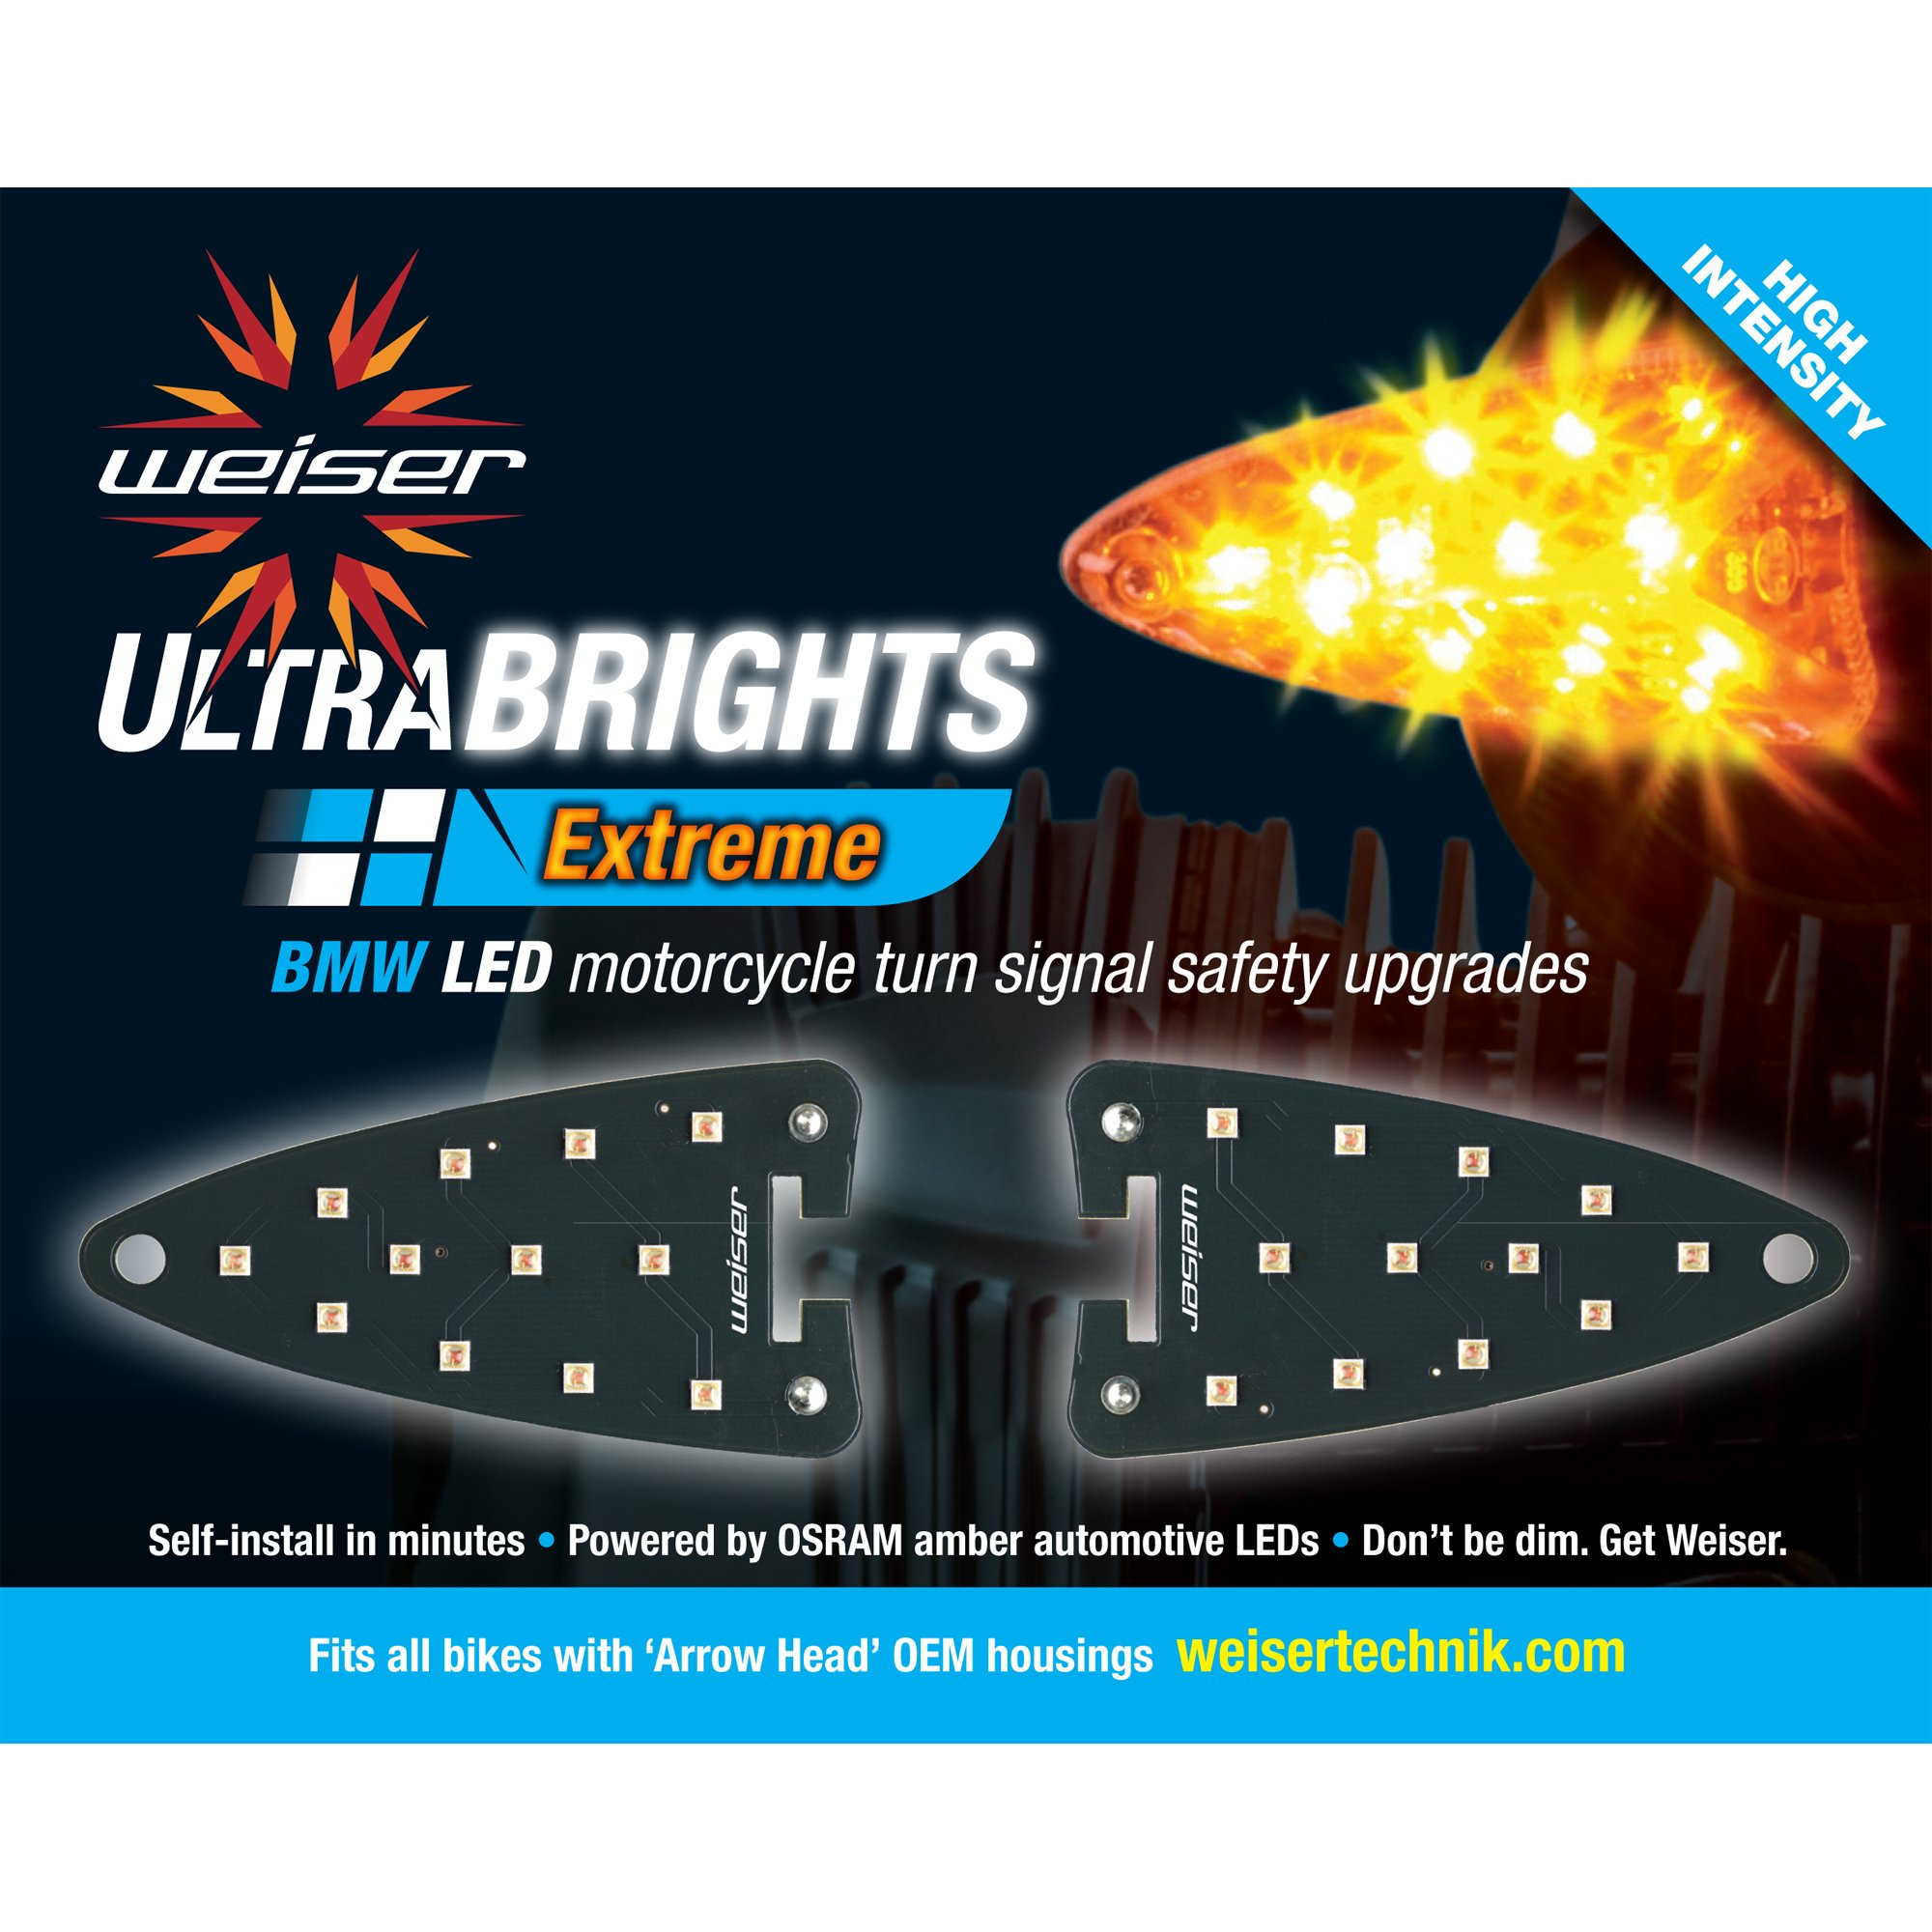 Ultrabrights Extreme LED Turn Signal Upgrades for newer BMW Motorcycles